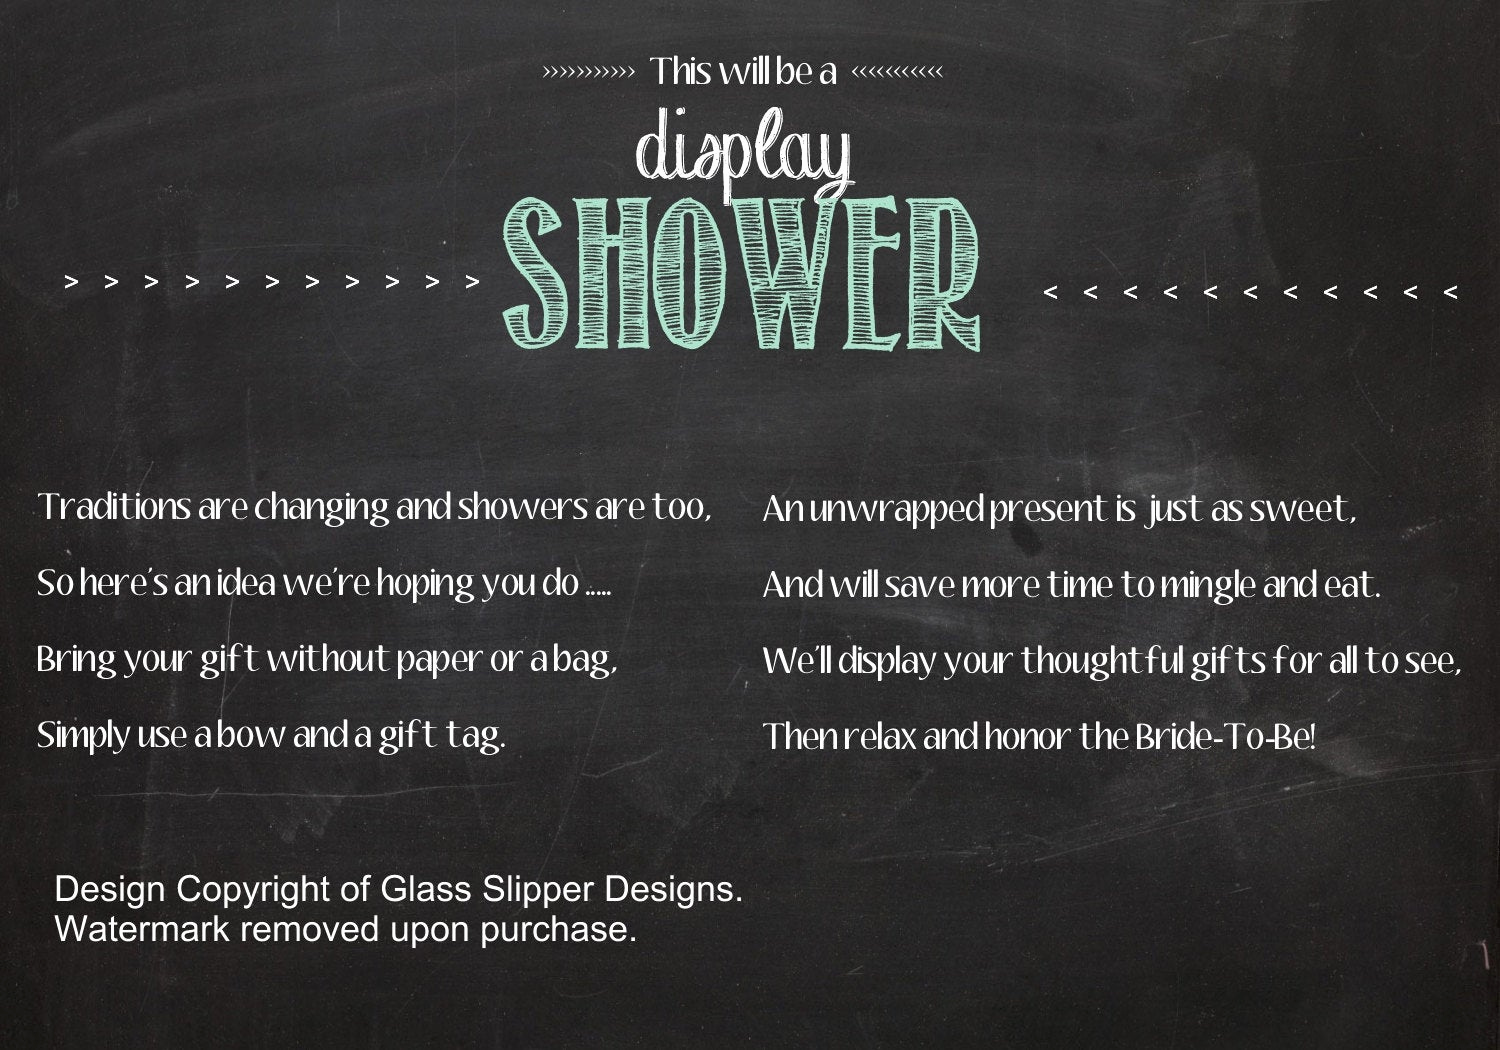 Display Bridal Shower Invitation Wording Best Of Printable Display Shower Insert for Bridal Shower